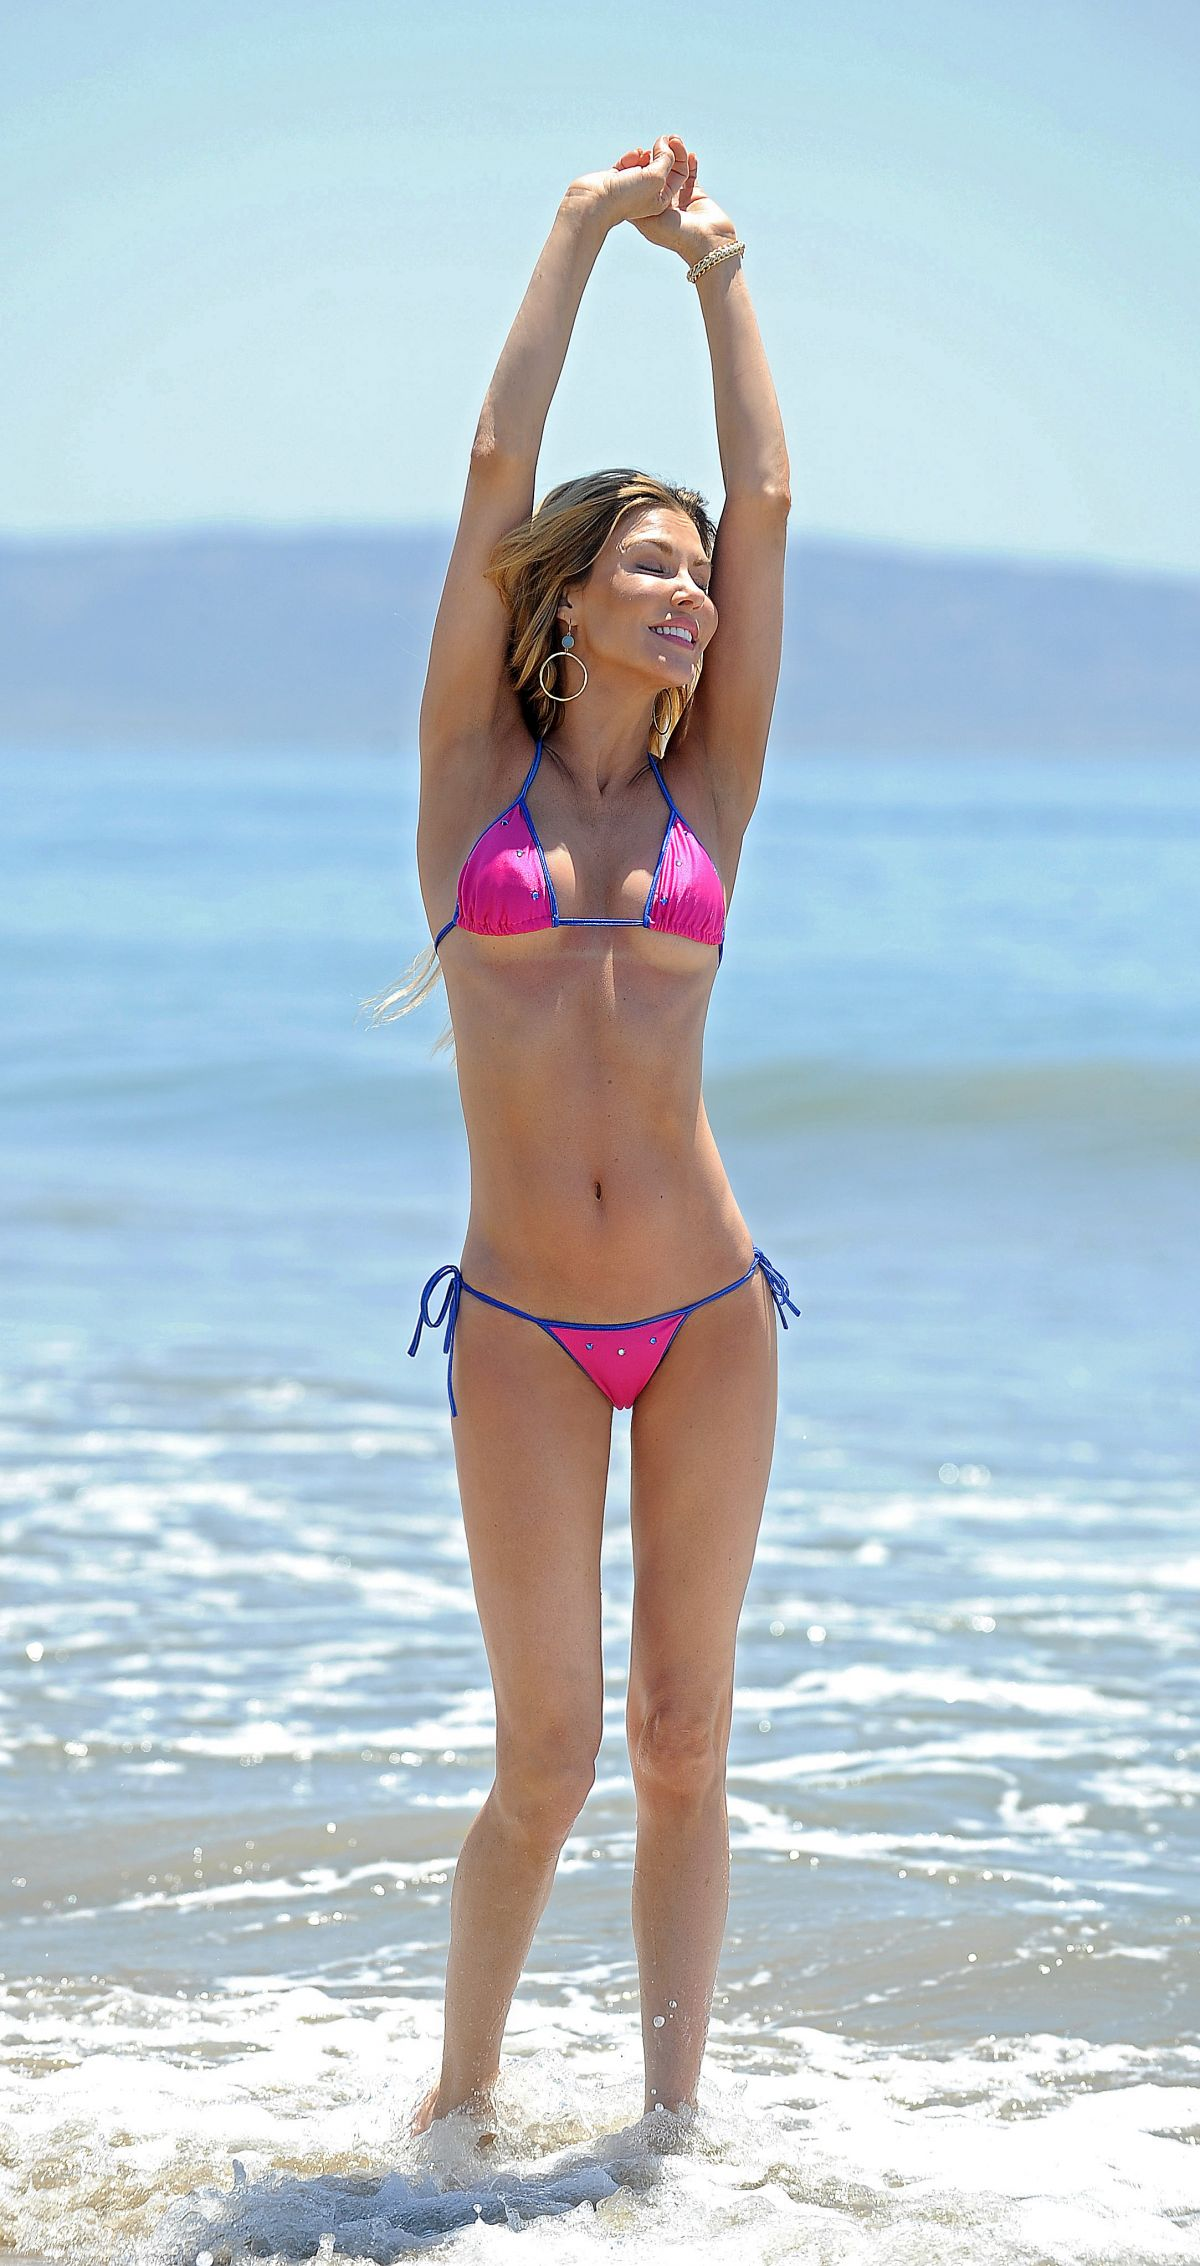 brandi-glanville-in-bikini-at-a-beach-in-los-angeles_34.jpg - 271.76 KB